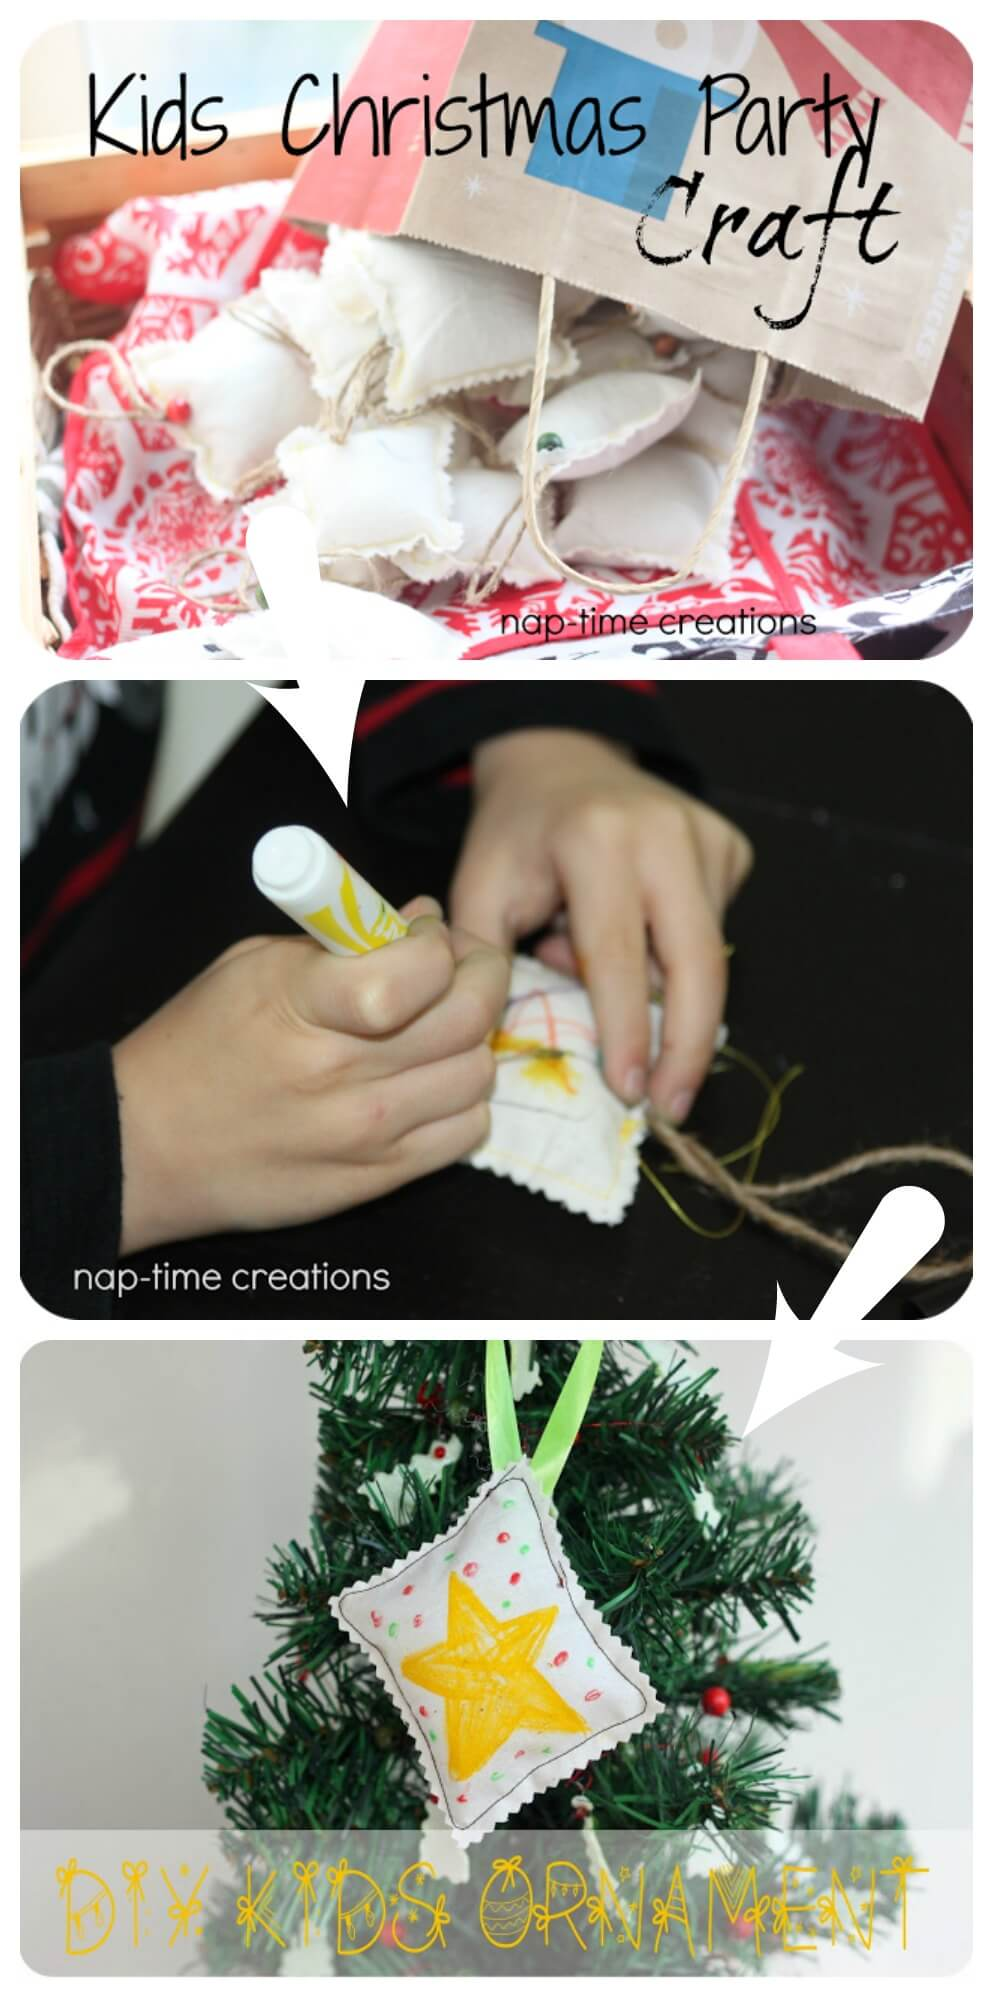 kids-ornament craft and activity from Nap-Time Creations